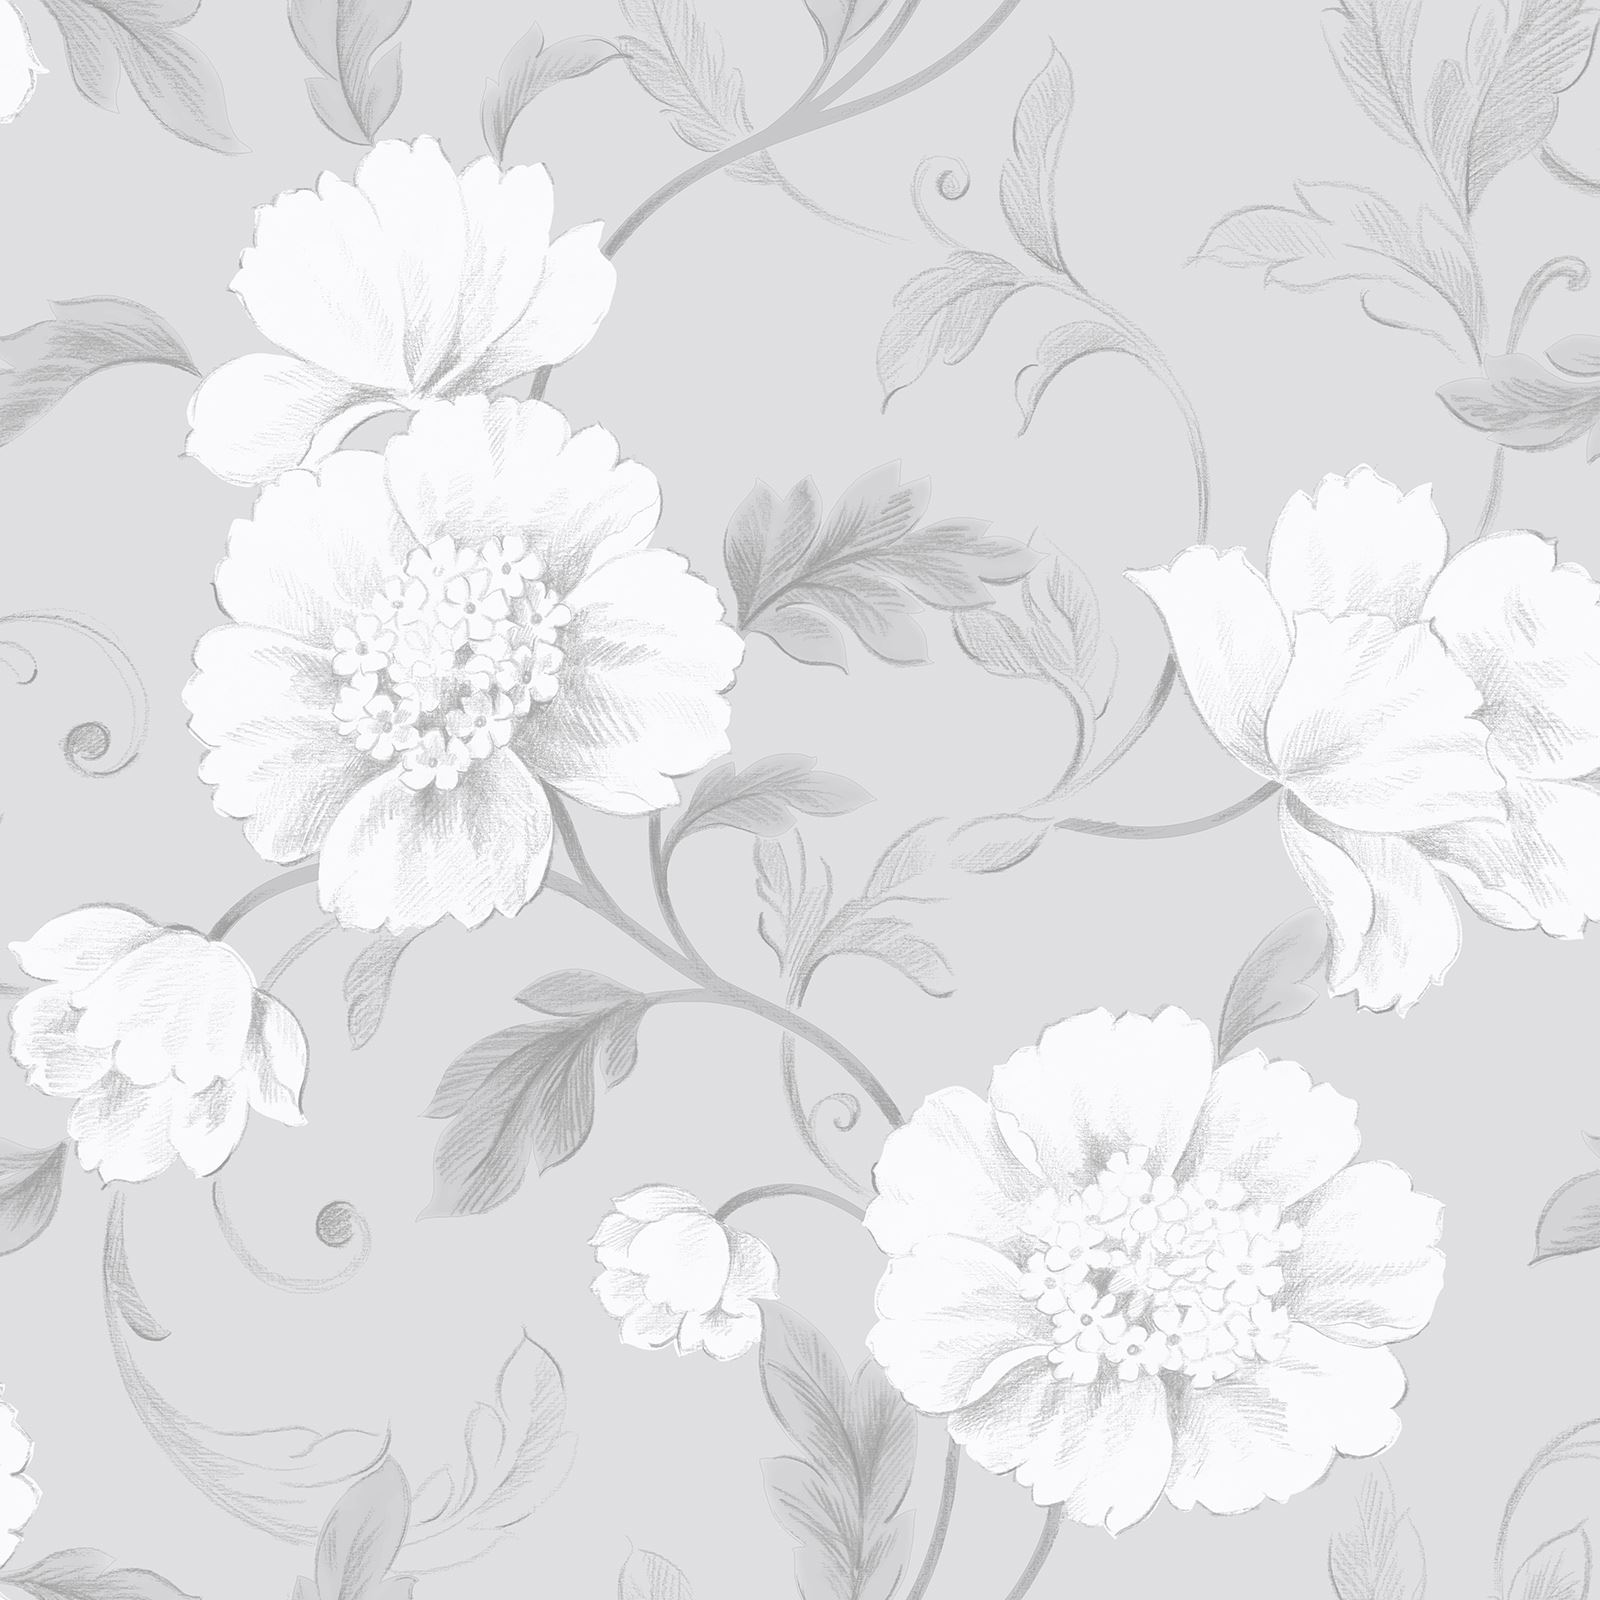 BOUTIQUE FLORAL WALLPAPER GREY - RASCH 226188 FLOWERS ...